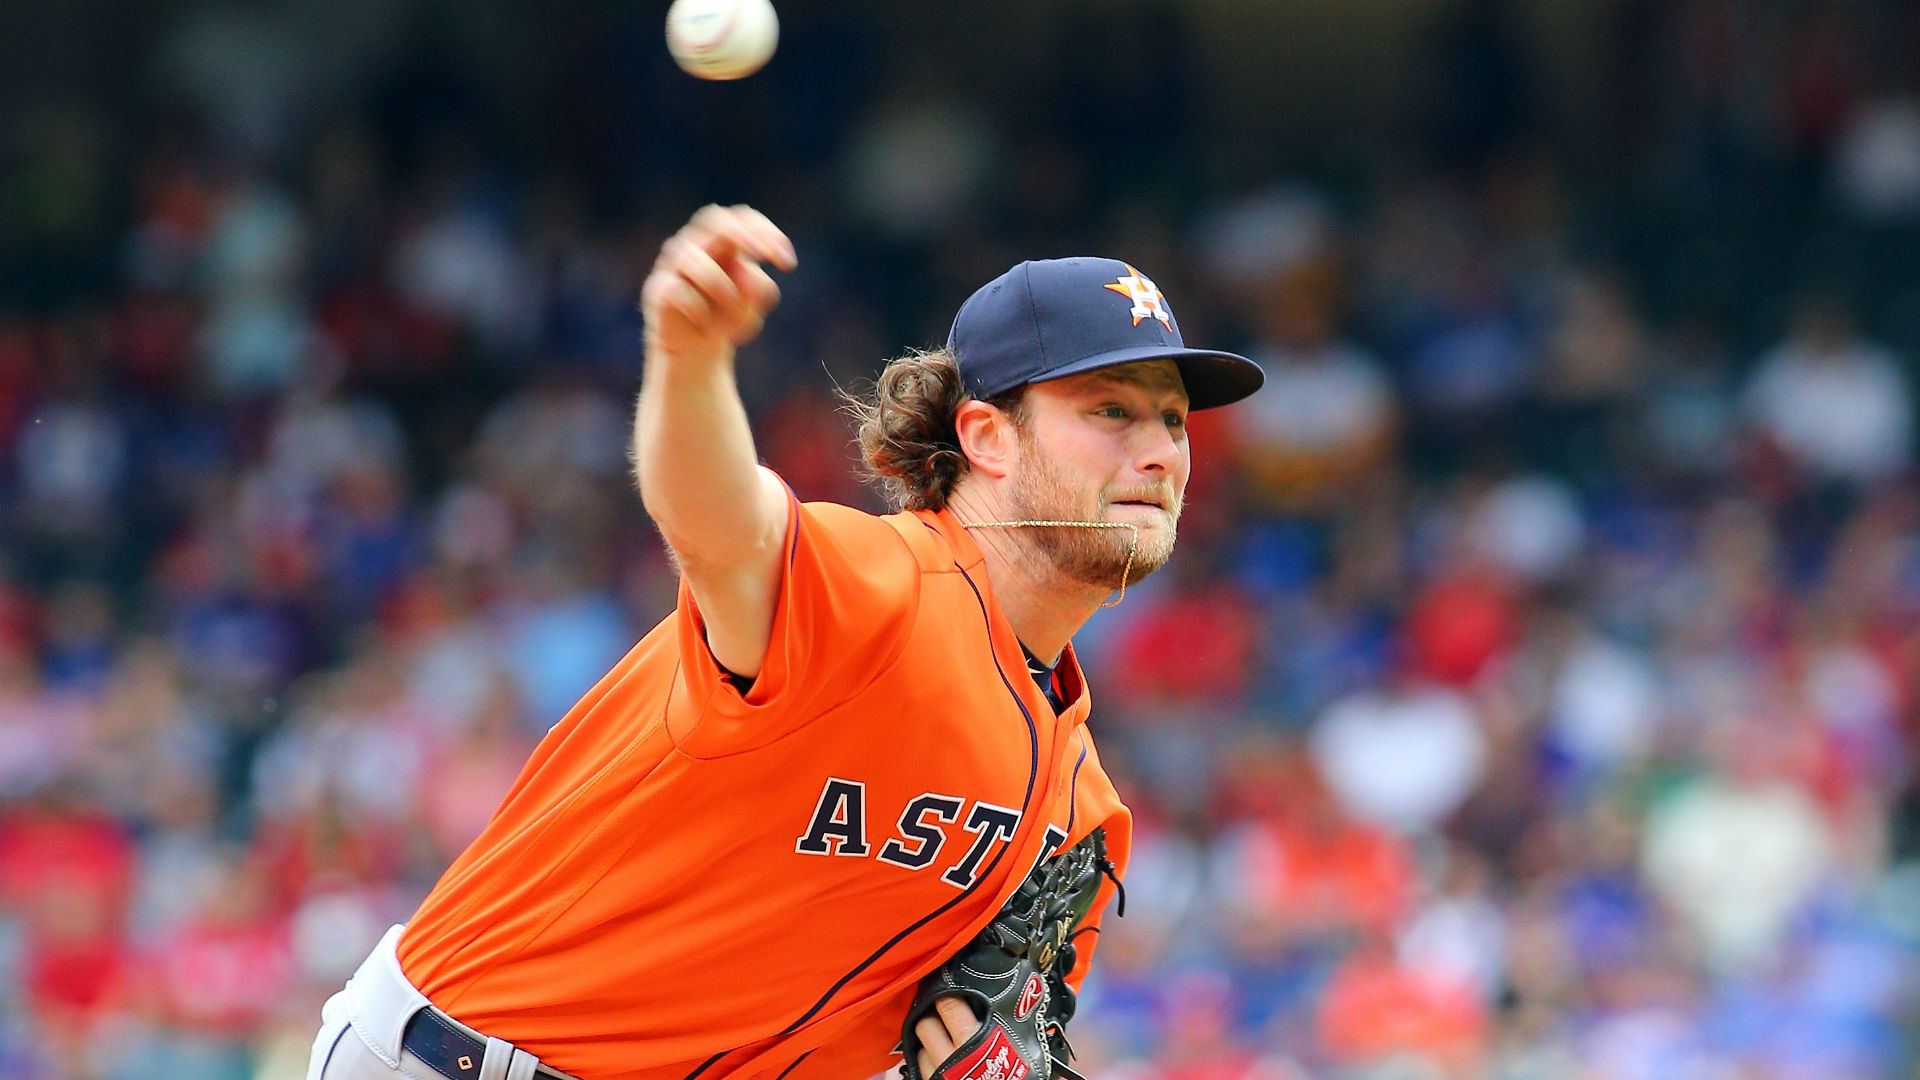 Gerrit Cole injury update: Astros starter (hamstring) 'good to go' next week, A.J. Hinch says